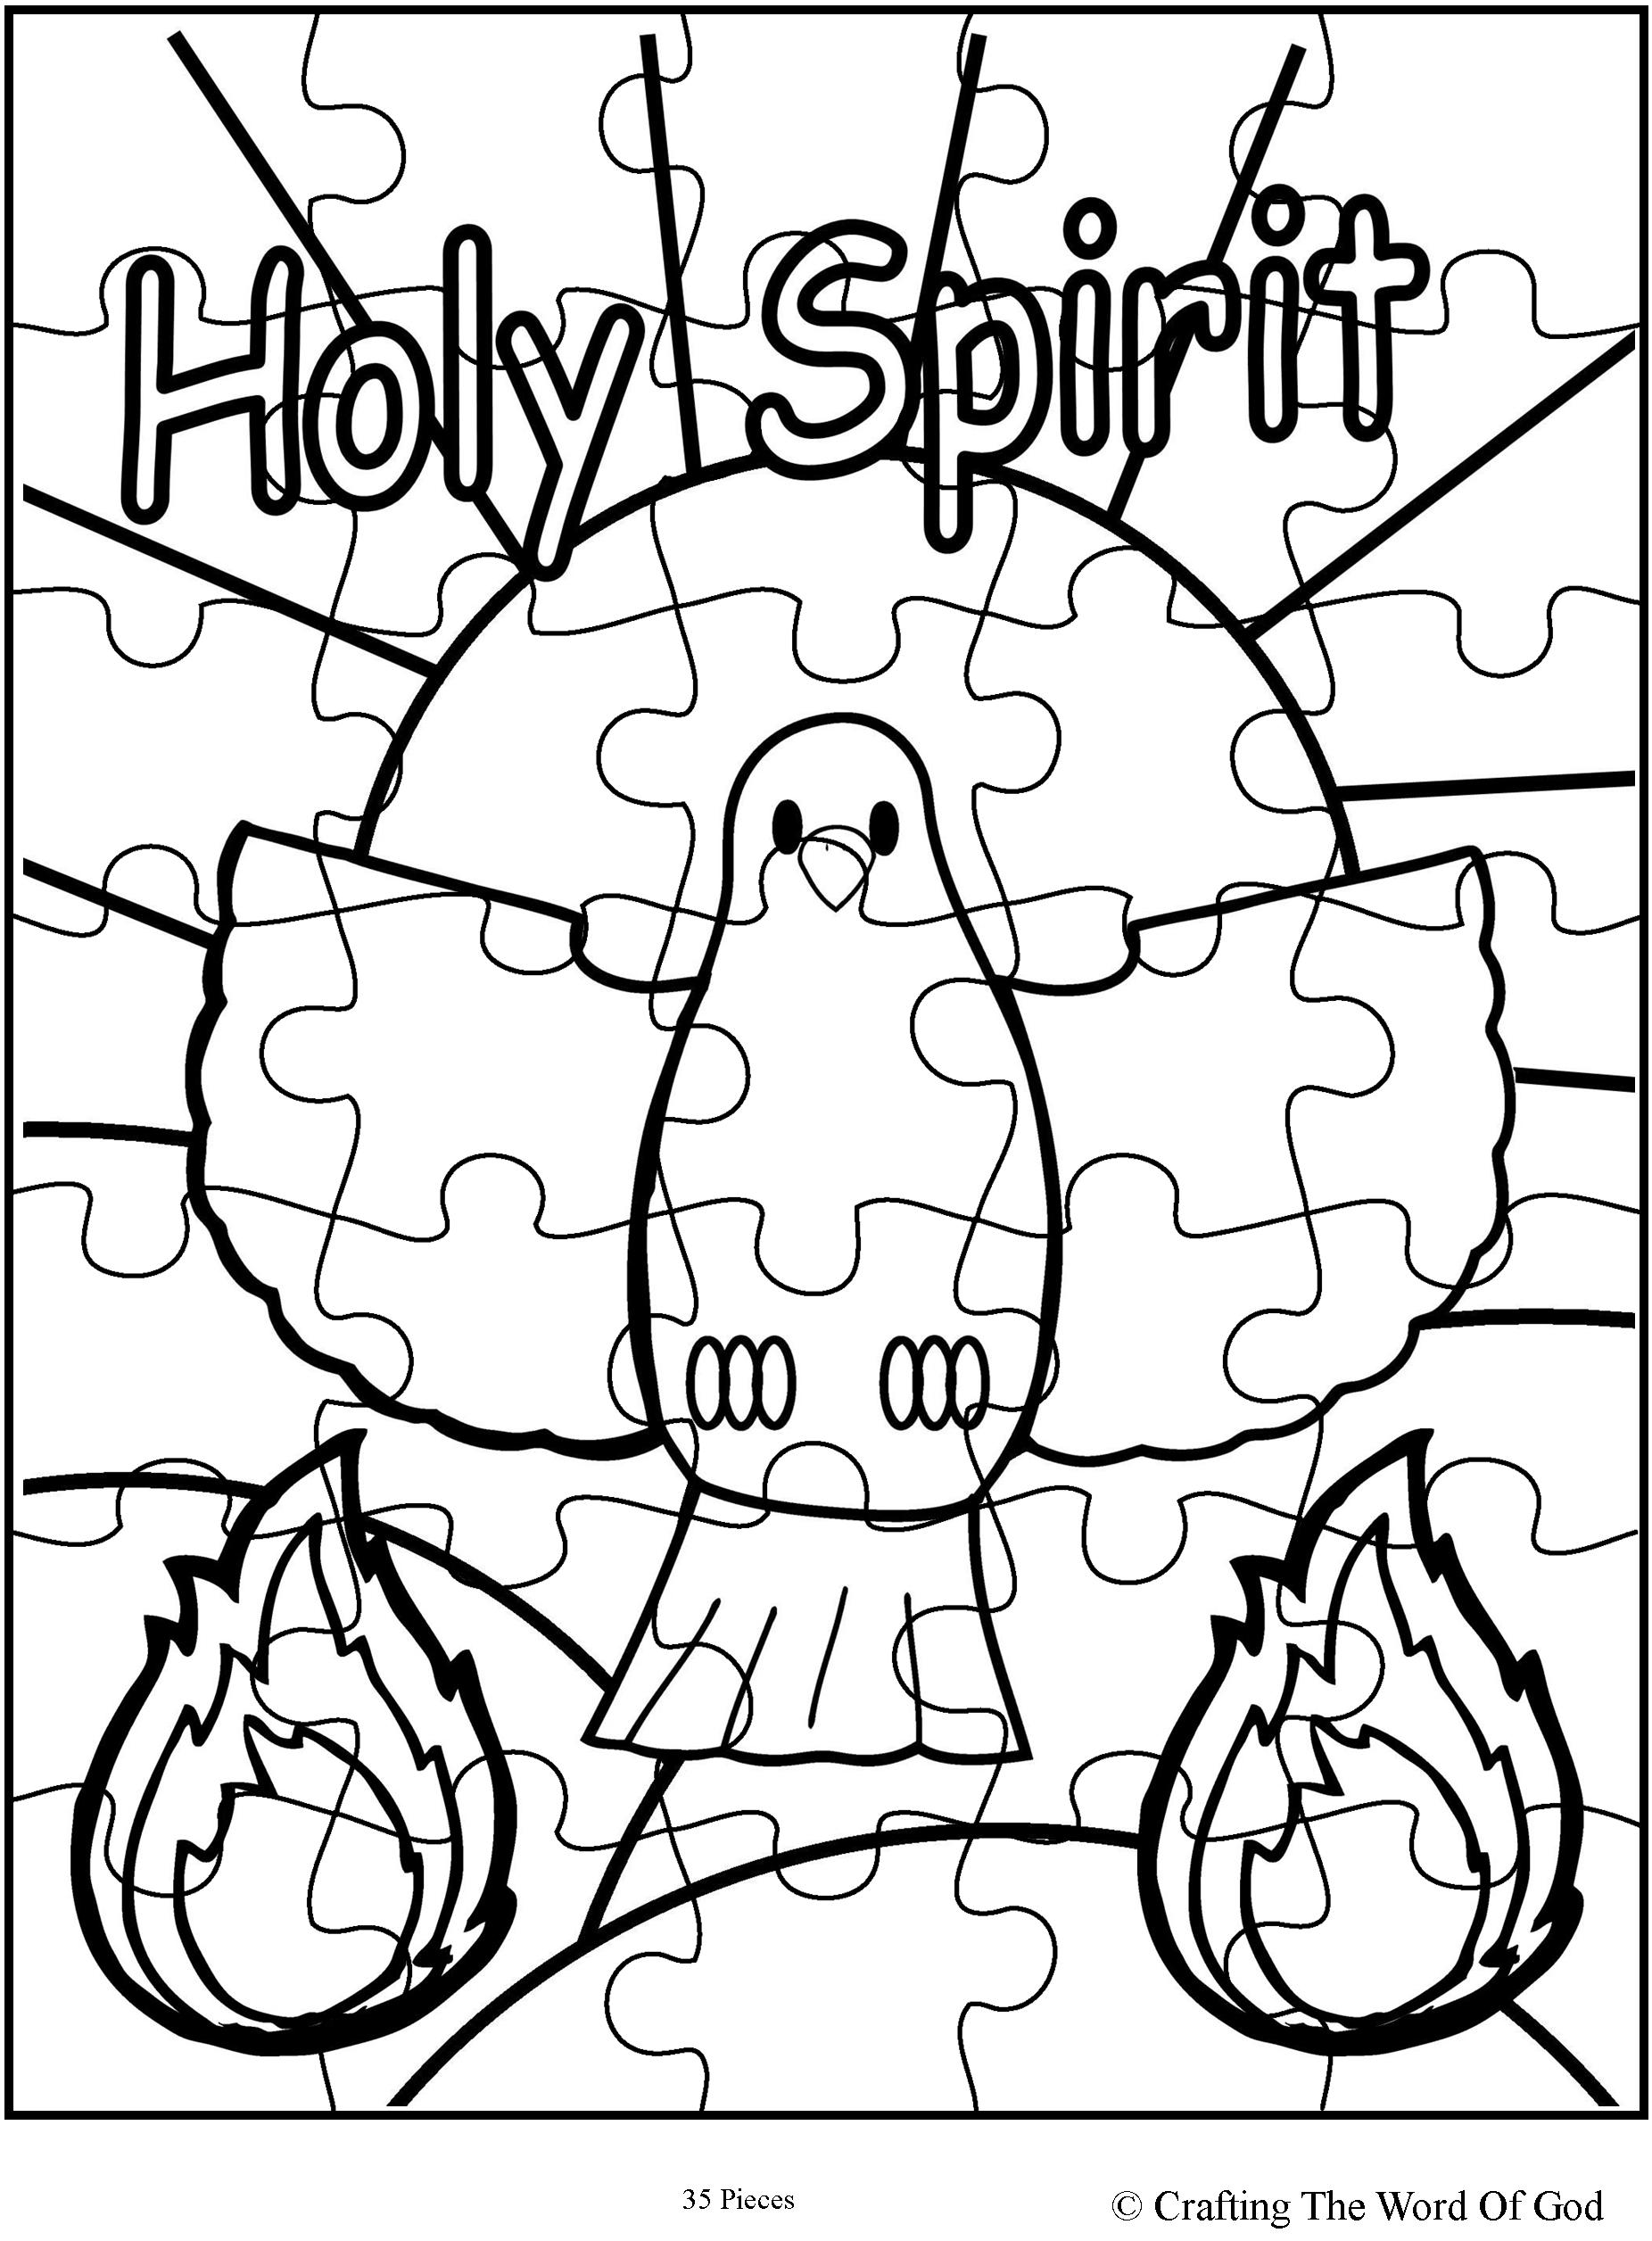 Holy Spirit Puzzle- Activity Sheet « Crafting The Word Of God